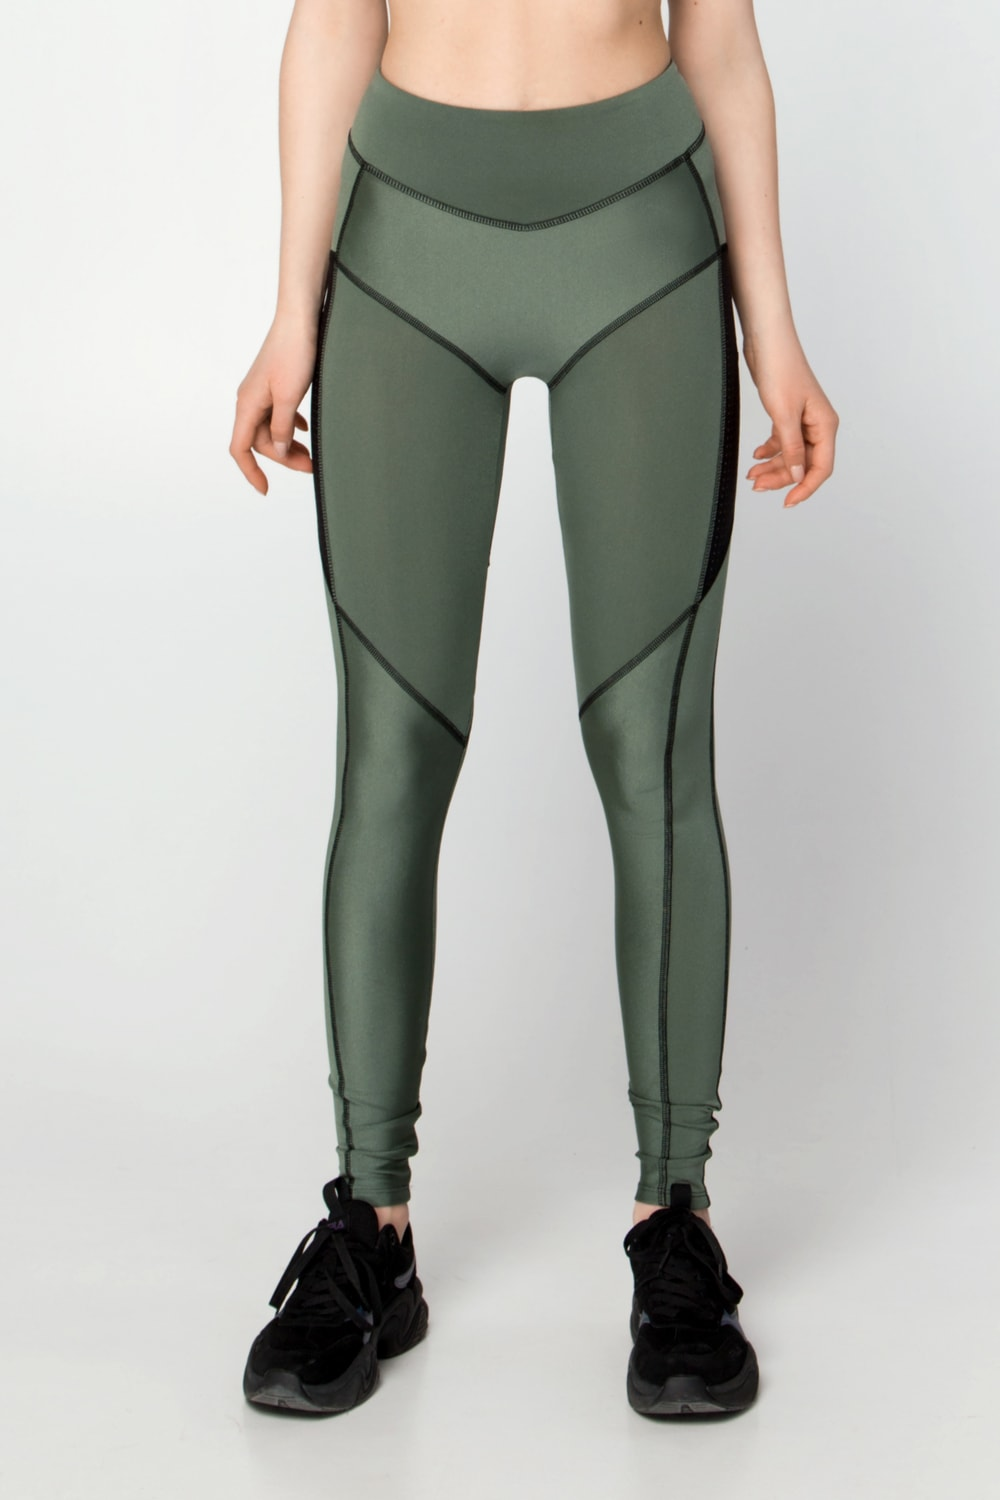 NEBULA NEPHRITIS LEGGINS - Designed for Fitness